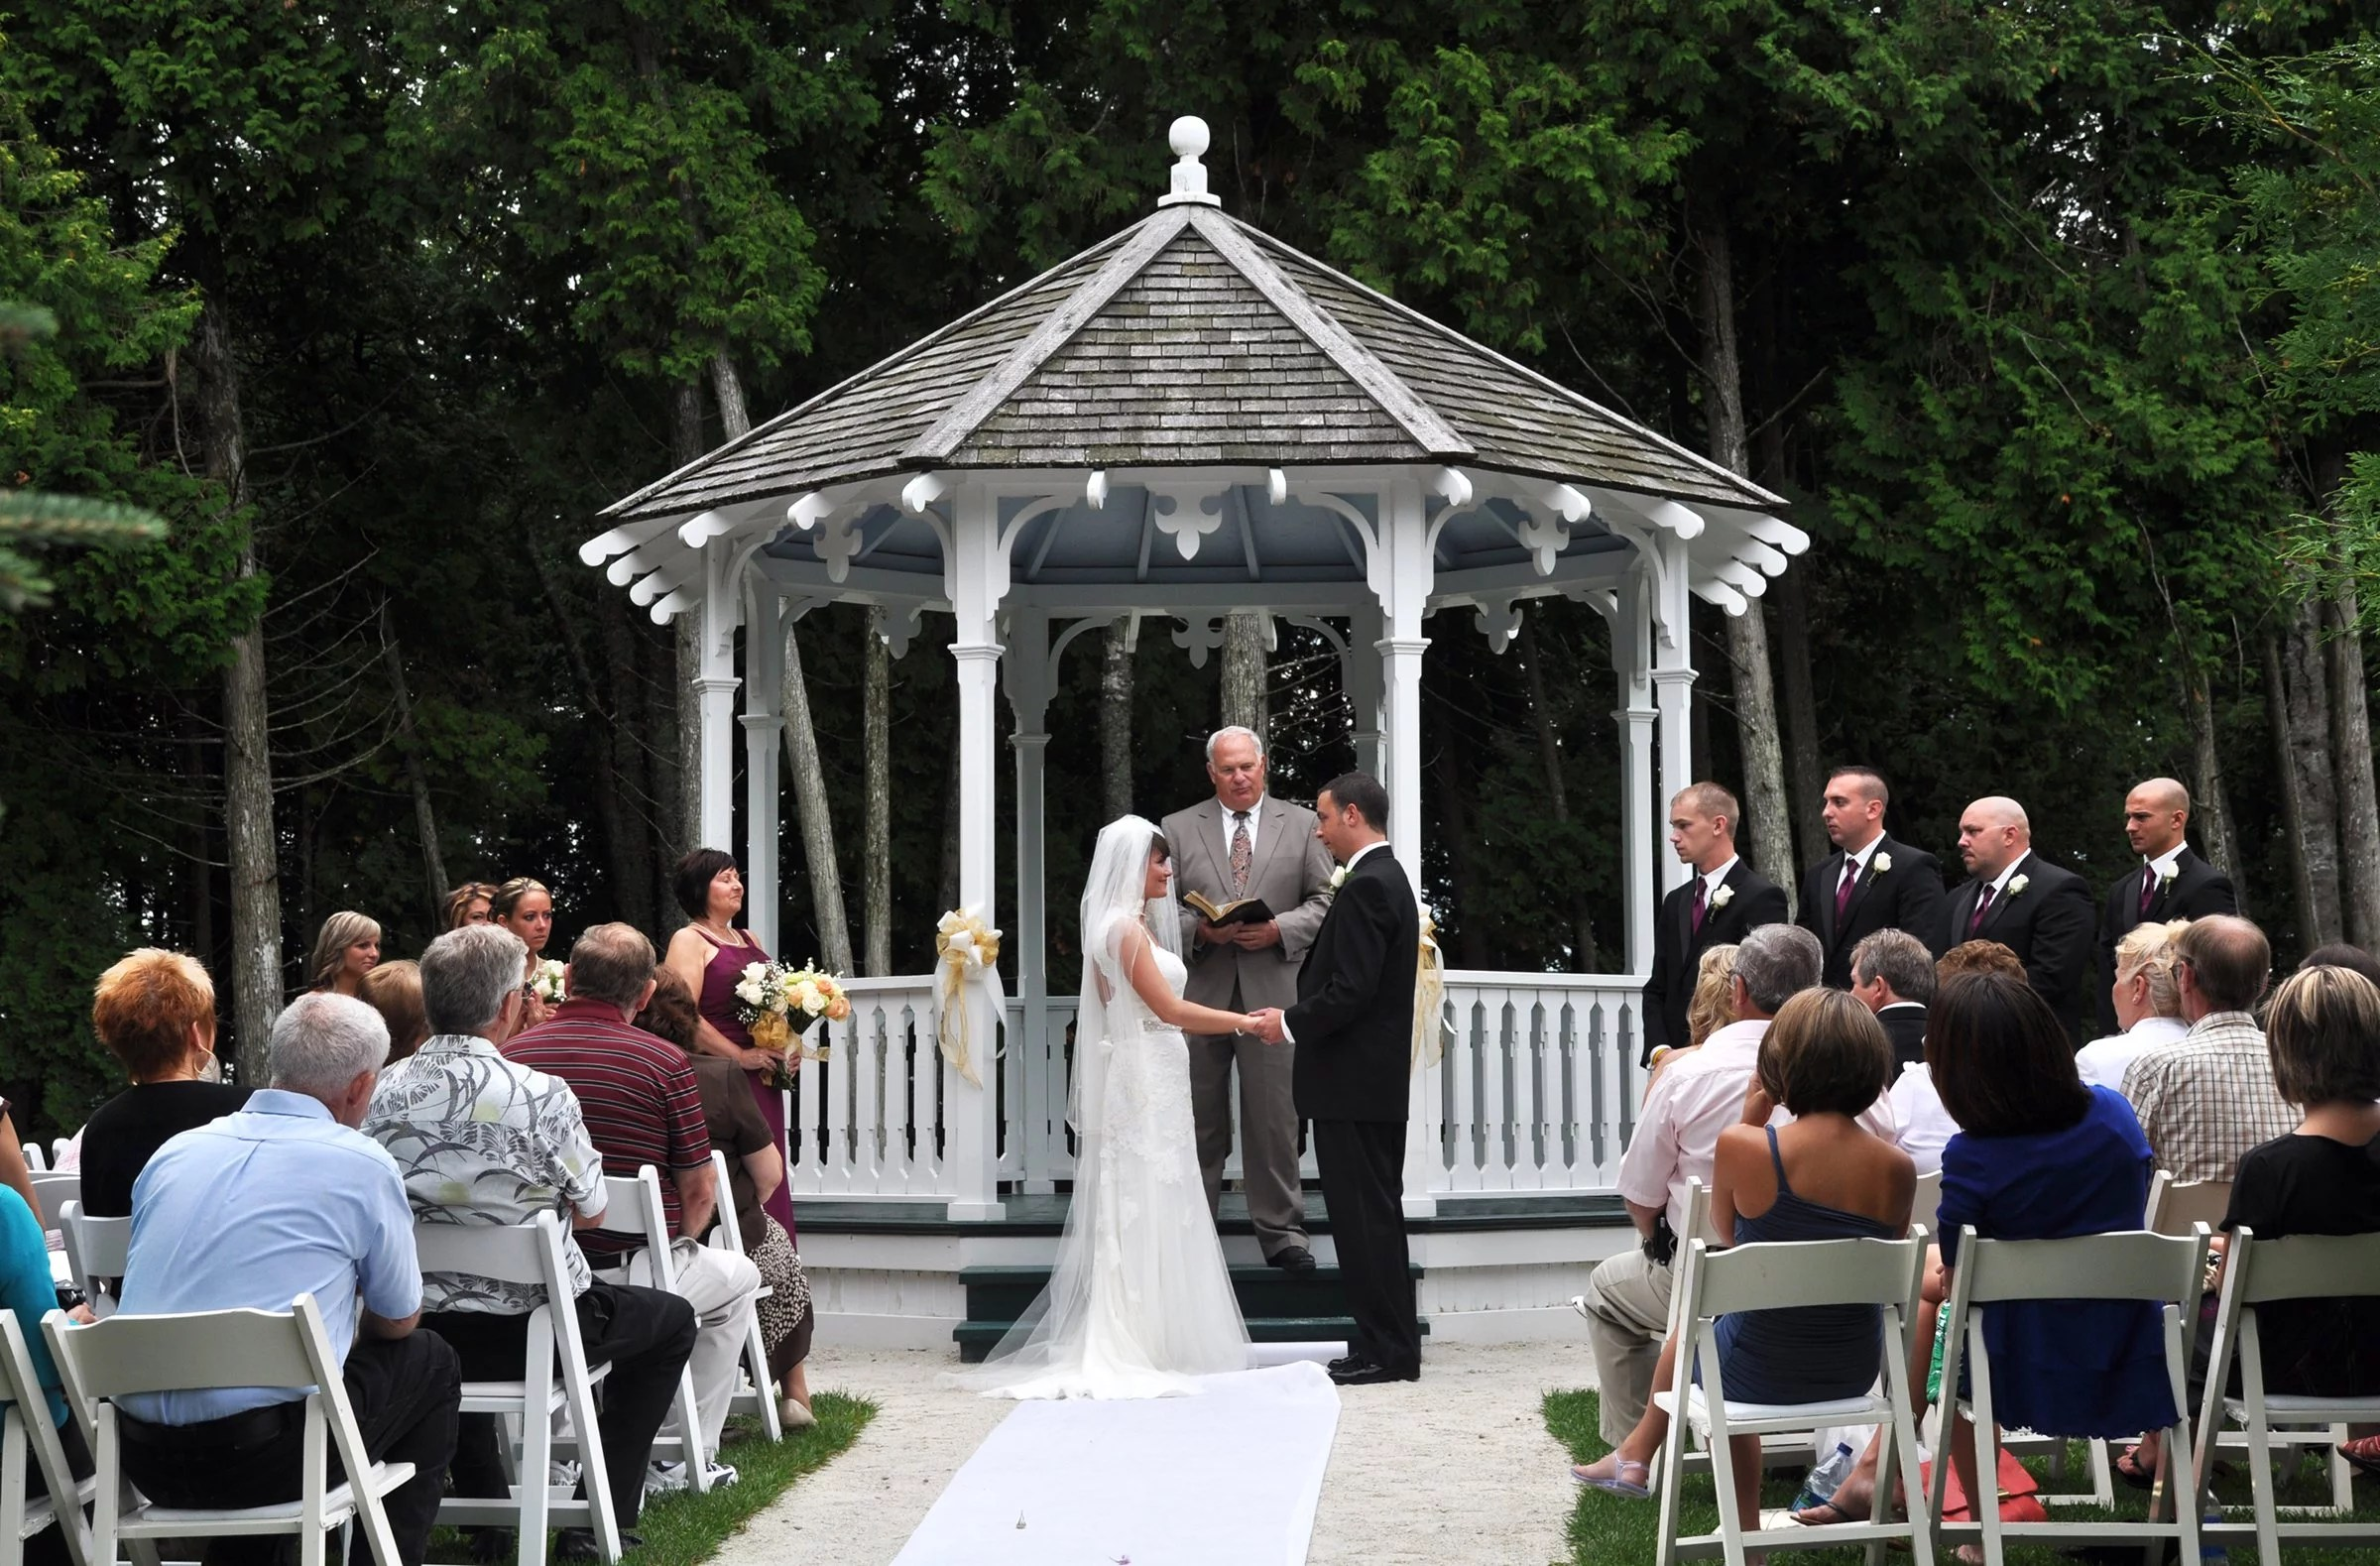 Image result for image of a wedding in a gazebo